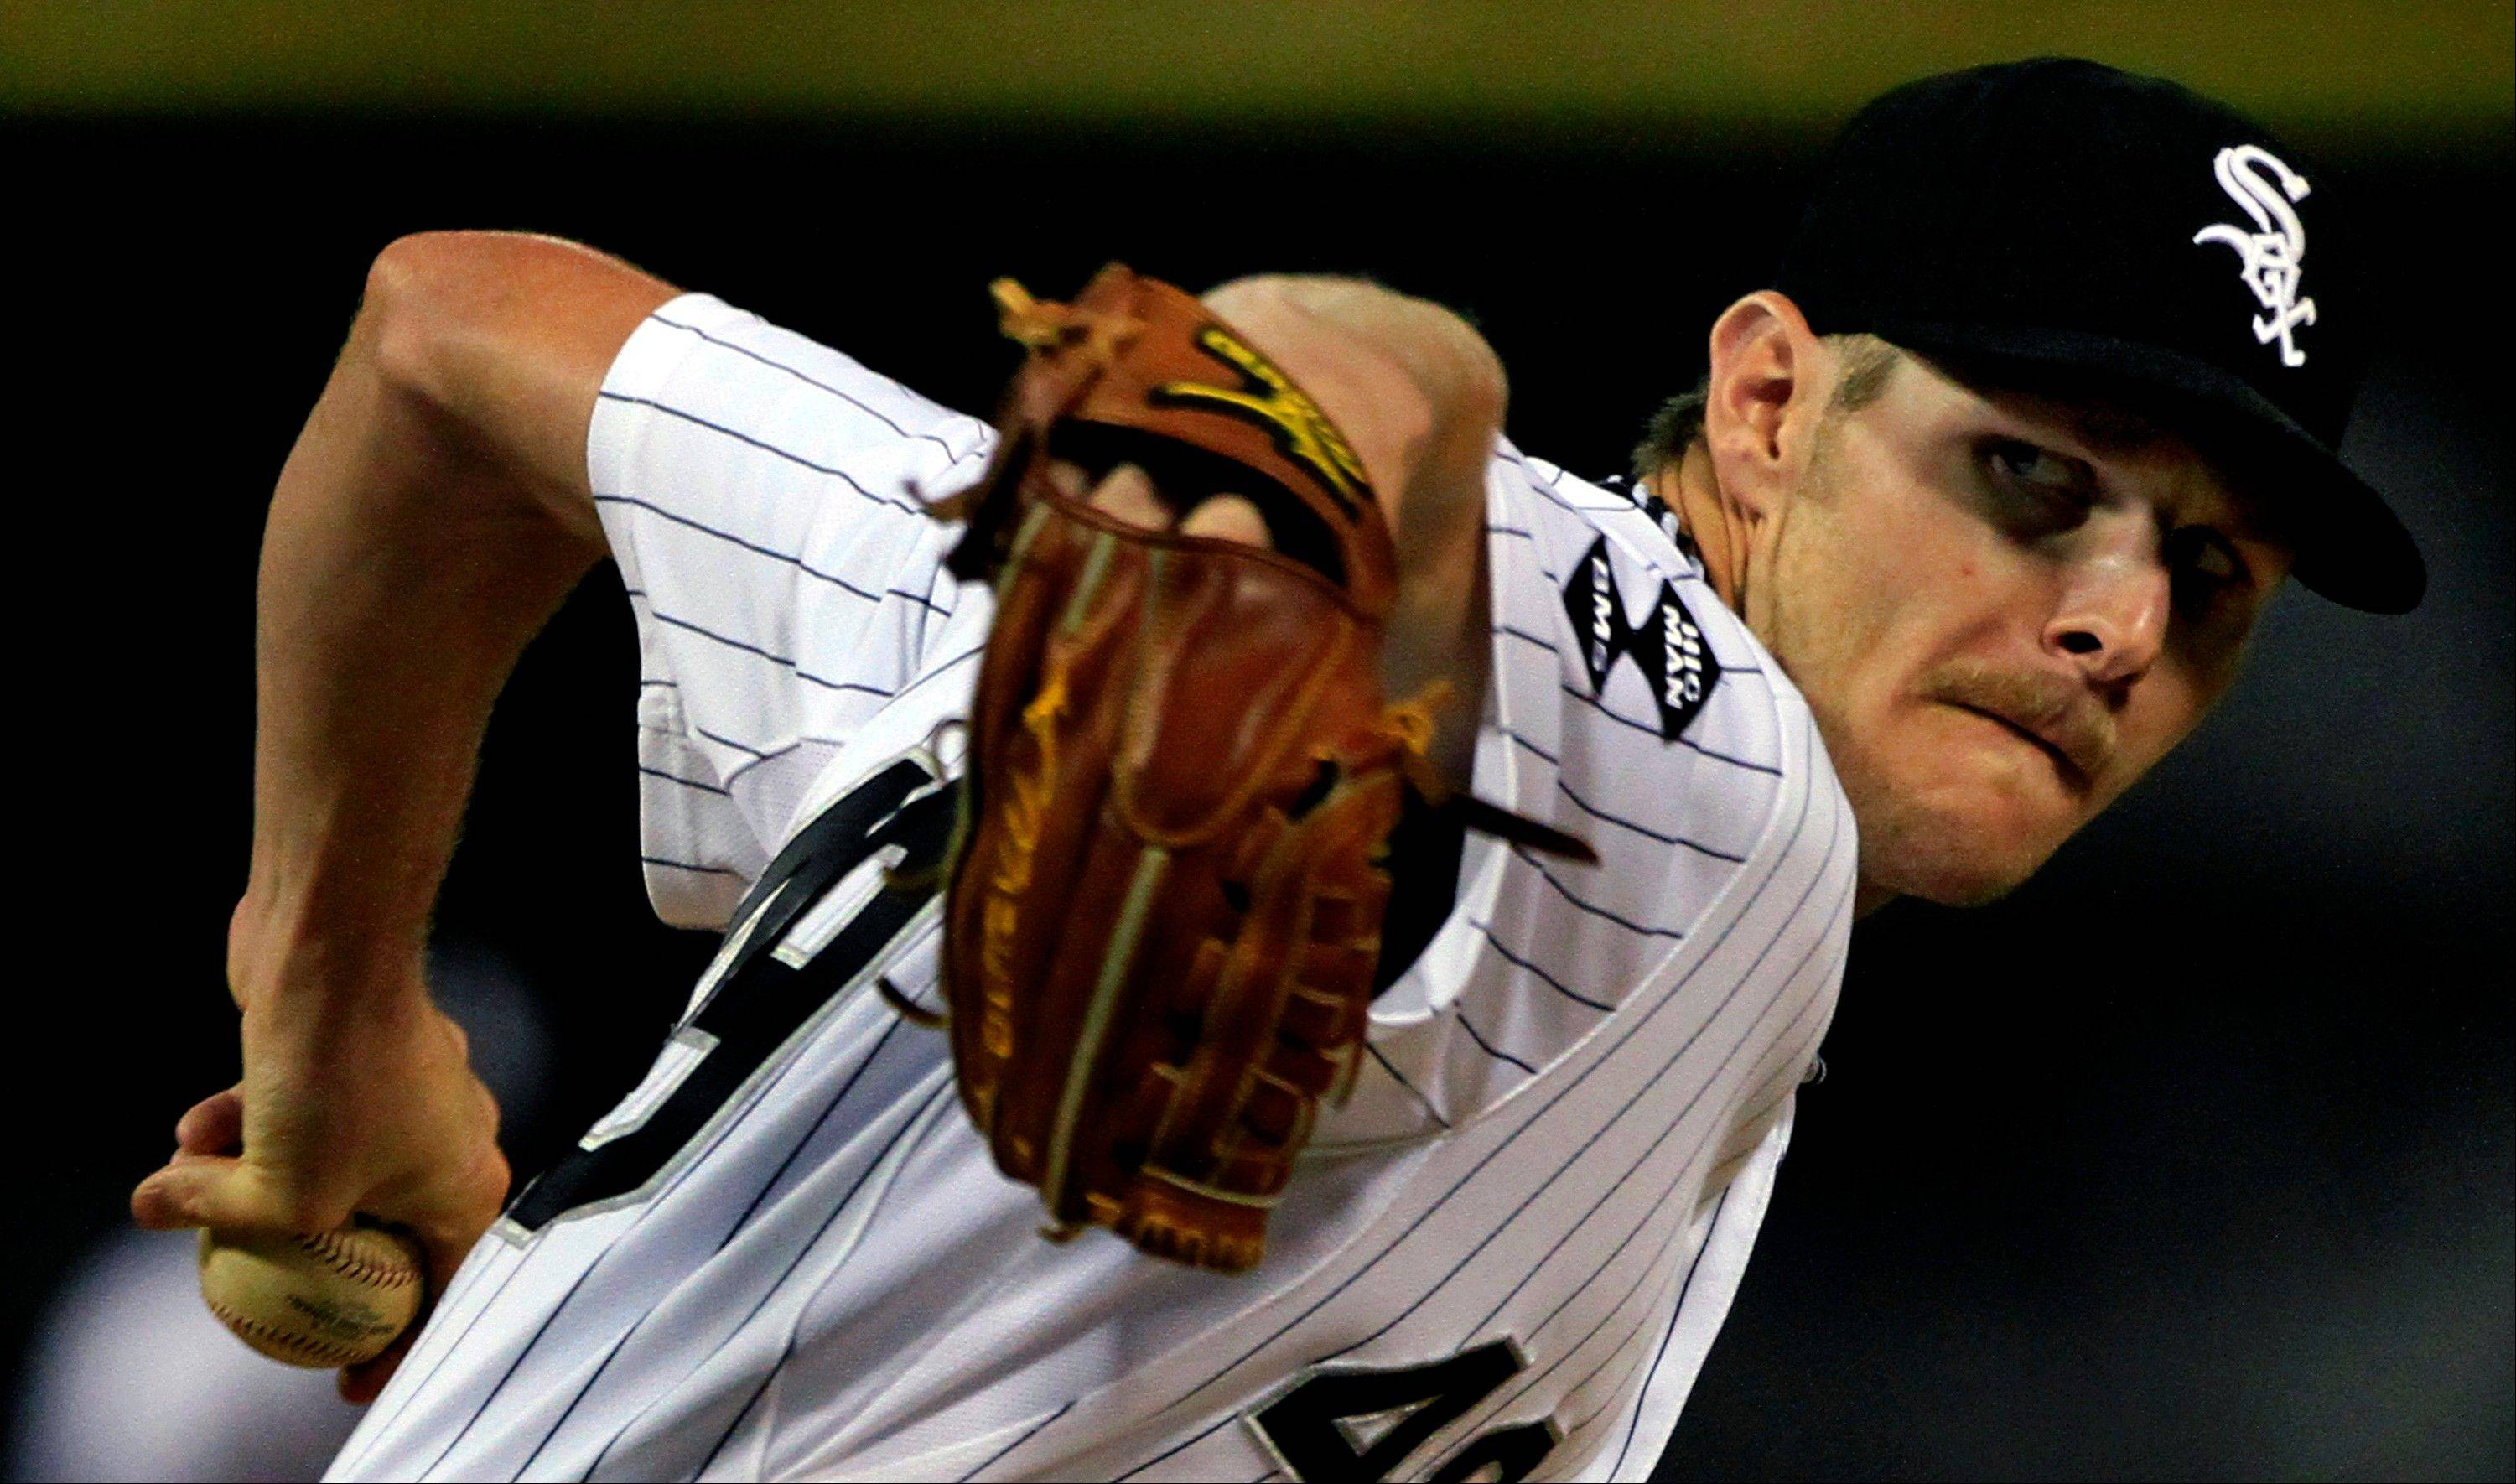 Chicago White Sox starting pitcher Chris Sale throws against the Cleveland Indians in the first inning during a baseball game Monday in Chicago.